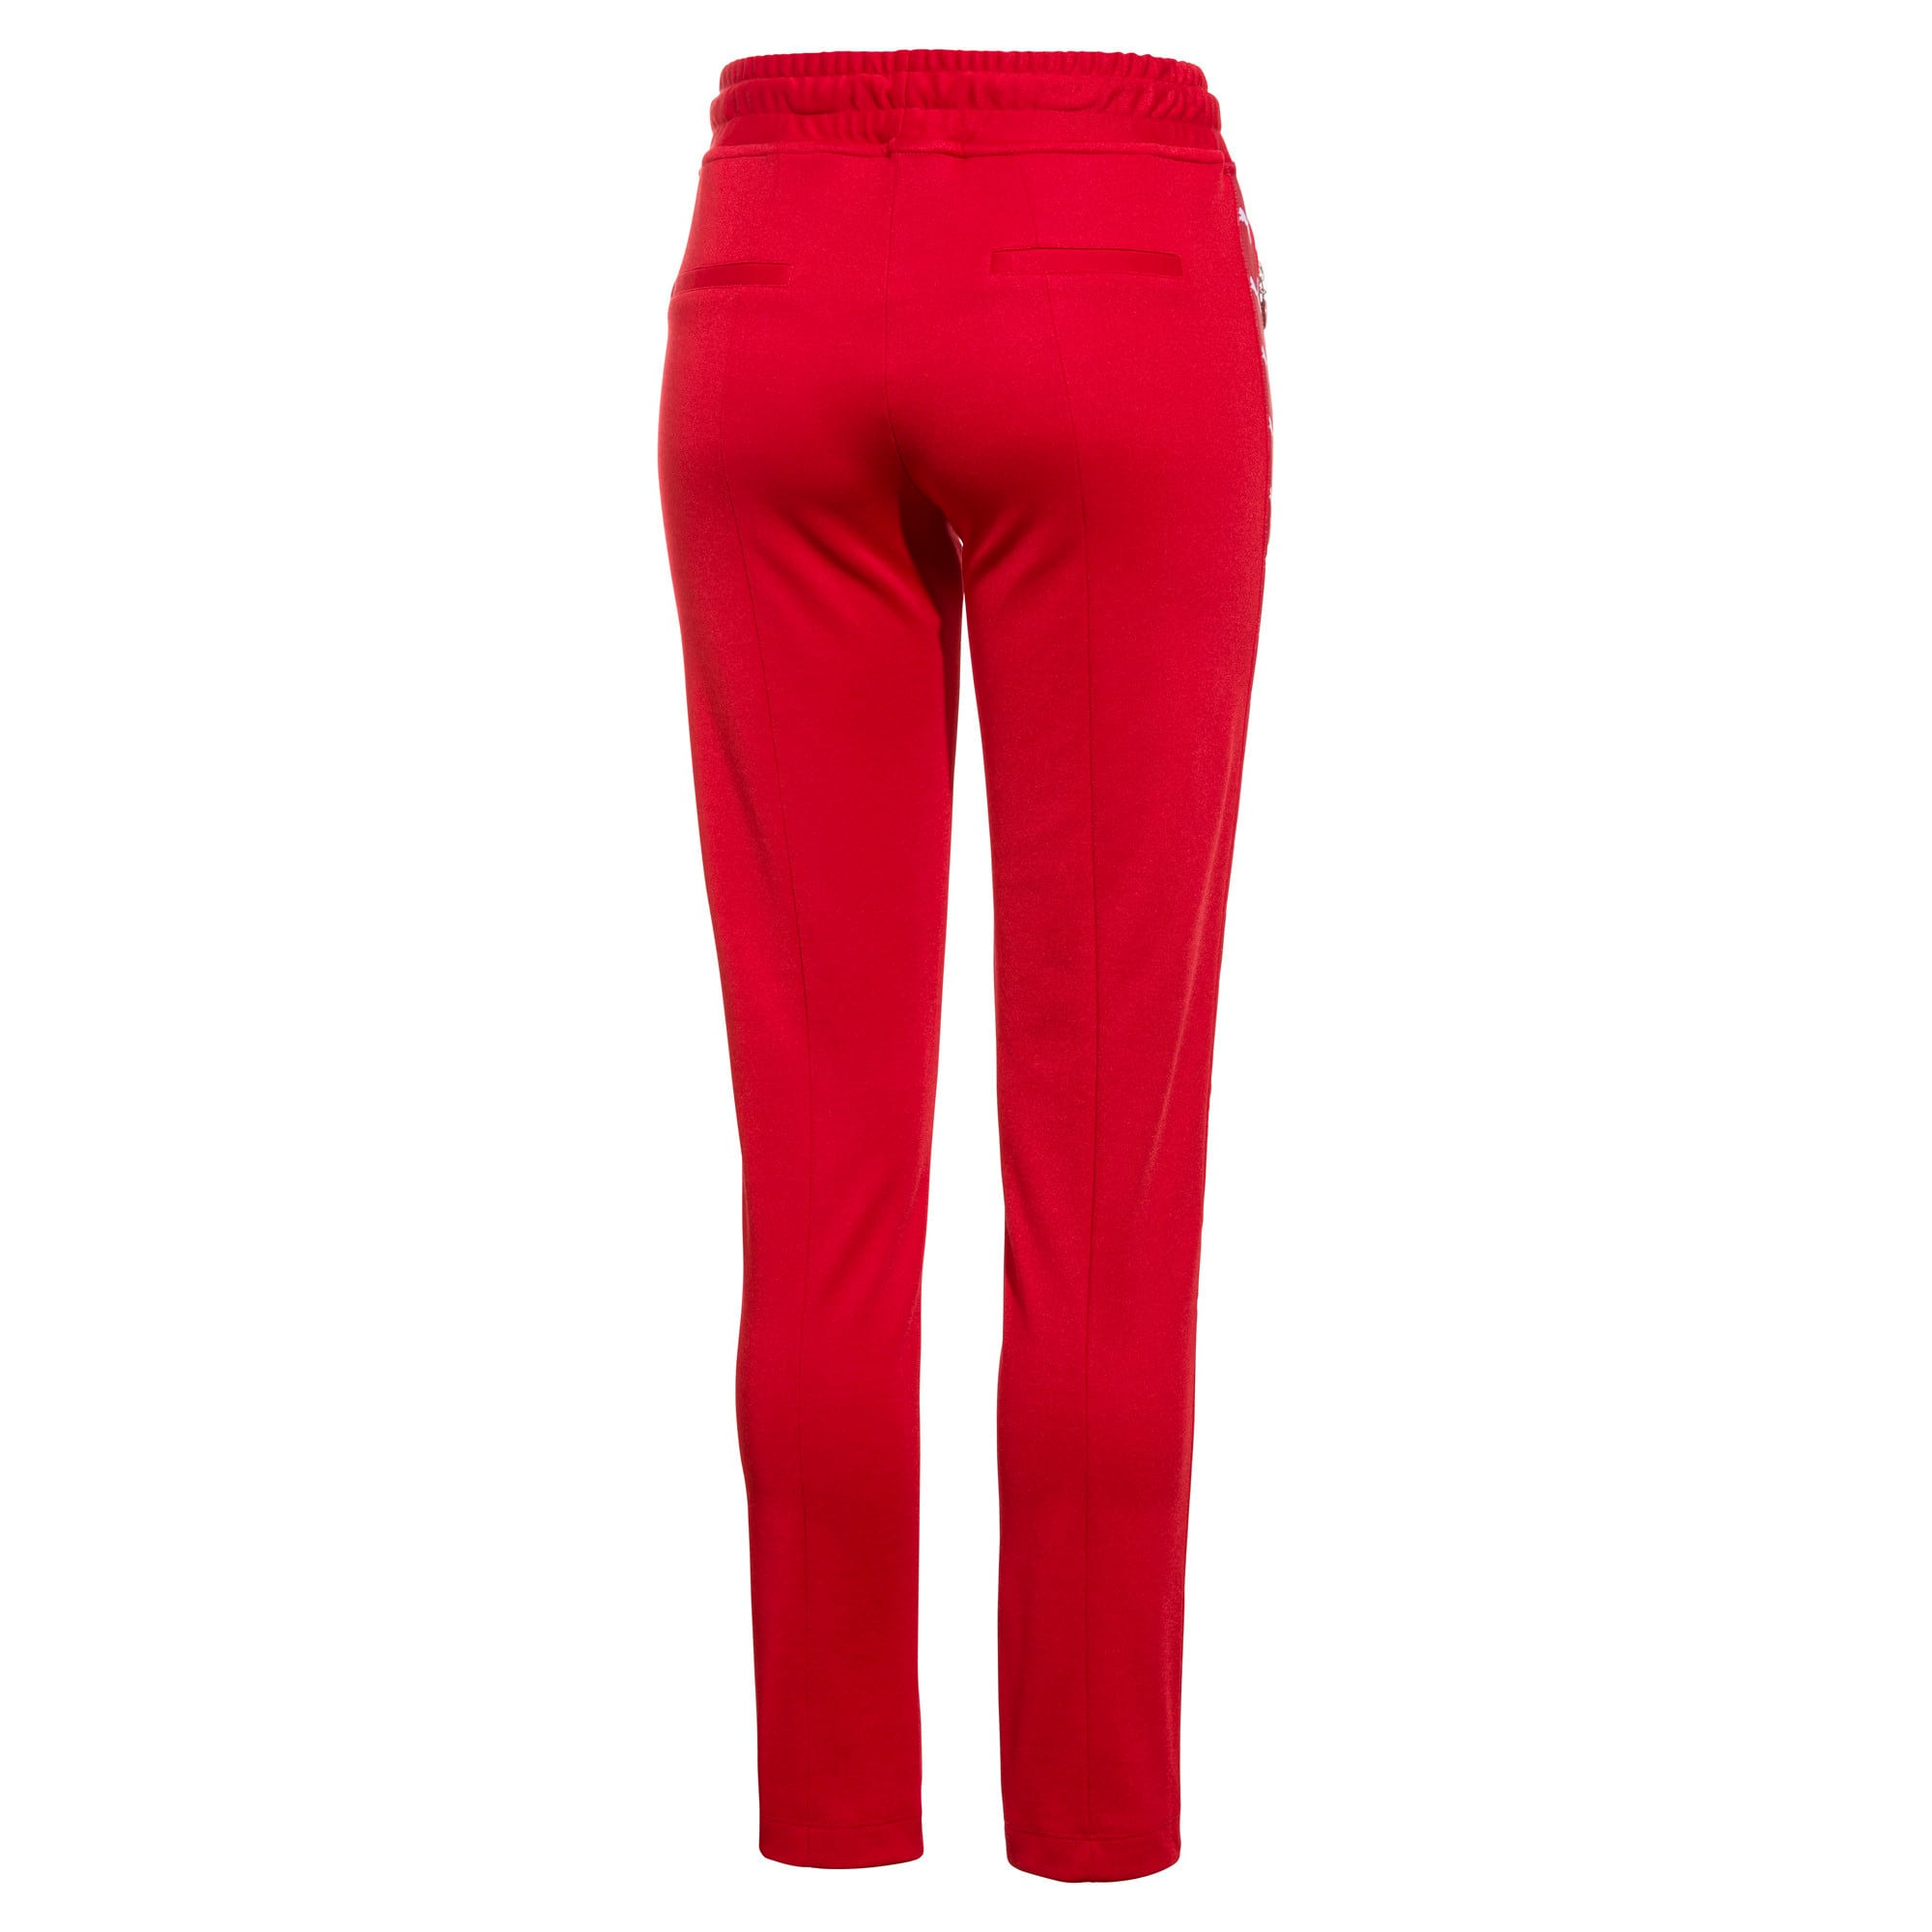 Thumbnail 2 of PUMA x THE KOOPLES Women's Track Pants, High Risk Red, medium